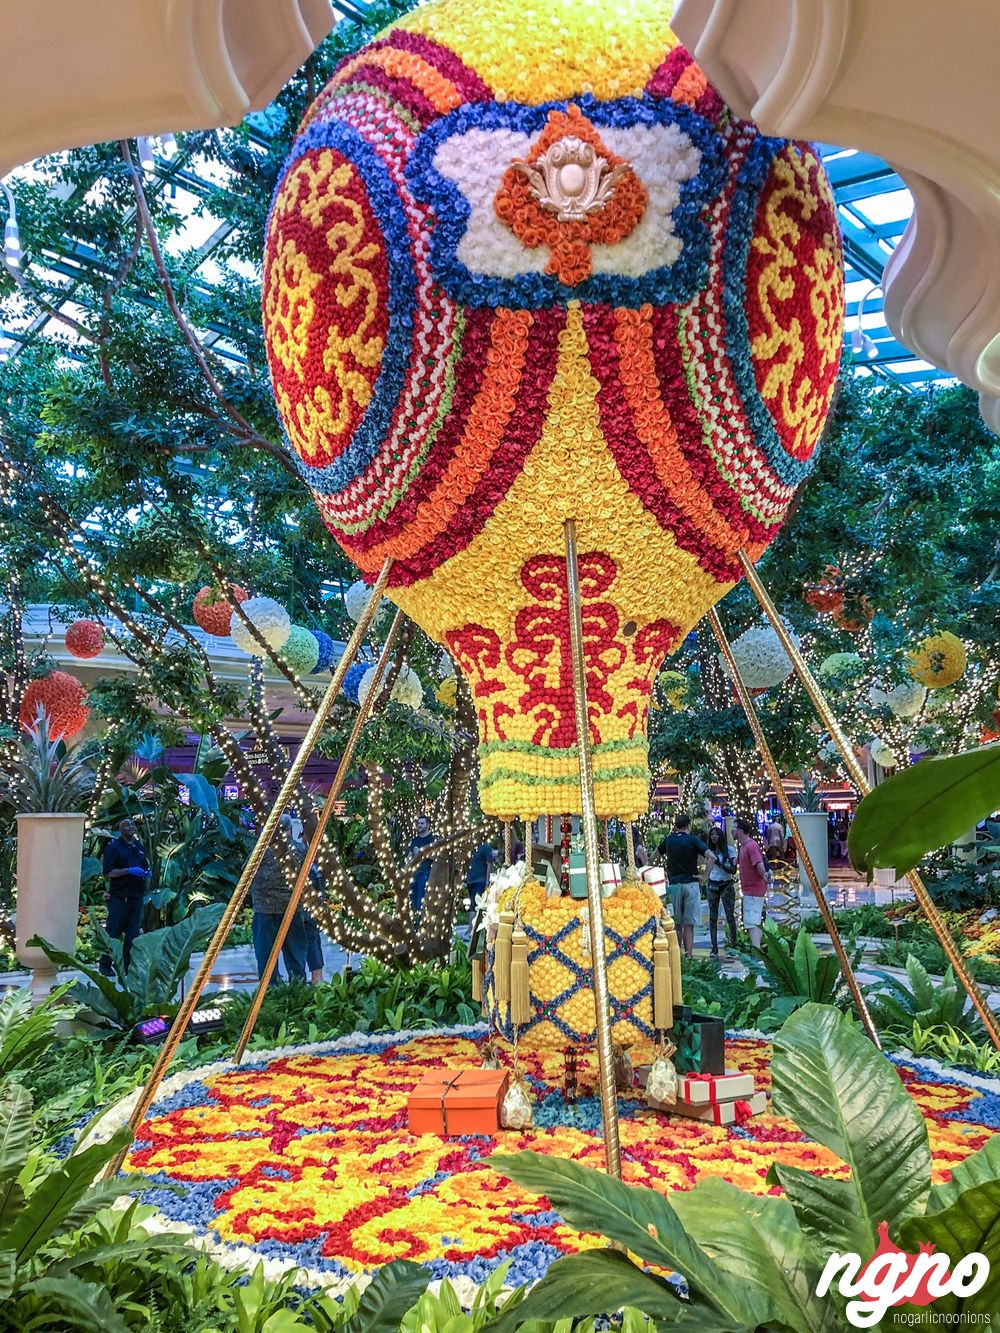 Floral Fantasy By Preston Bailey At The Wynn Hotel Las Vegas Nogarlicnoonions Restaurant Food And Travel Stories Reviews Lebanon